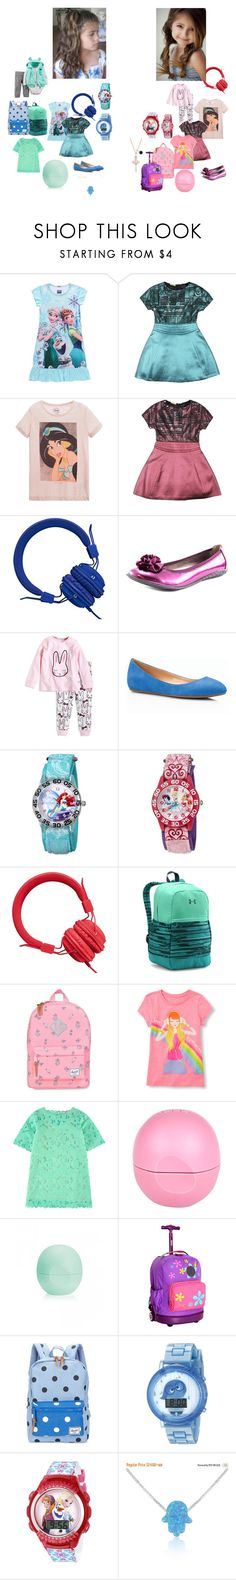 Lesly styles by marilynmagana on Polyvore featuring mode, John Galliano, Kenneth Cole Reaction, Talbots, Herschel Supply Co., JWorld, Disney, Eos, River Island and STELLA McCARTNEY